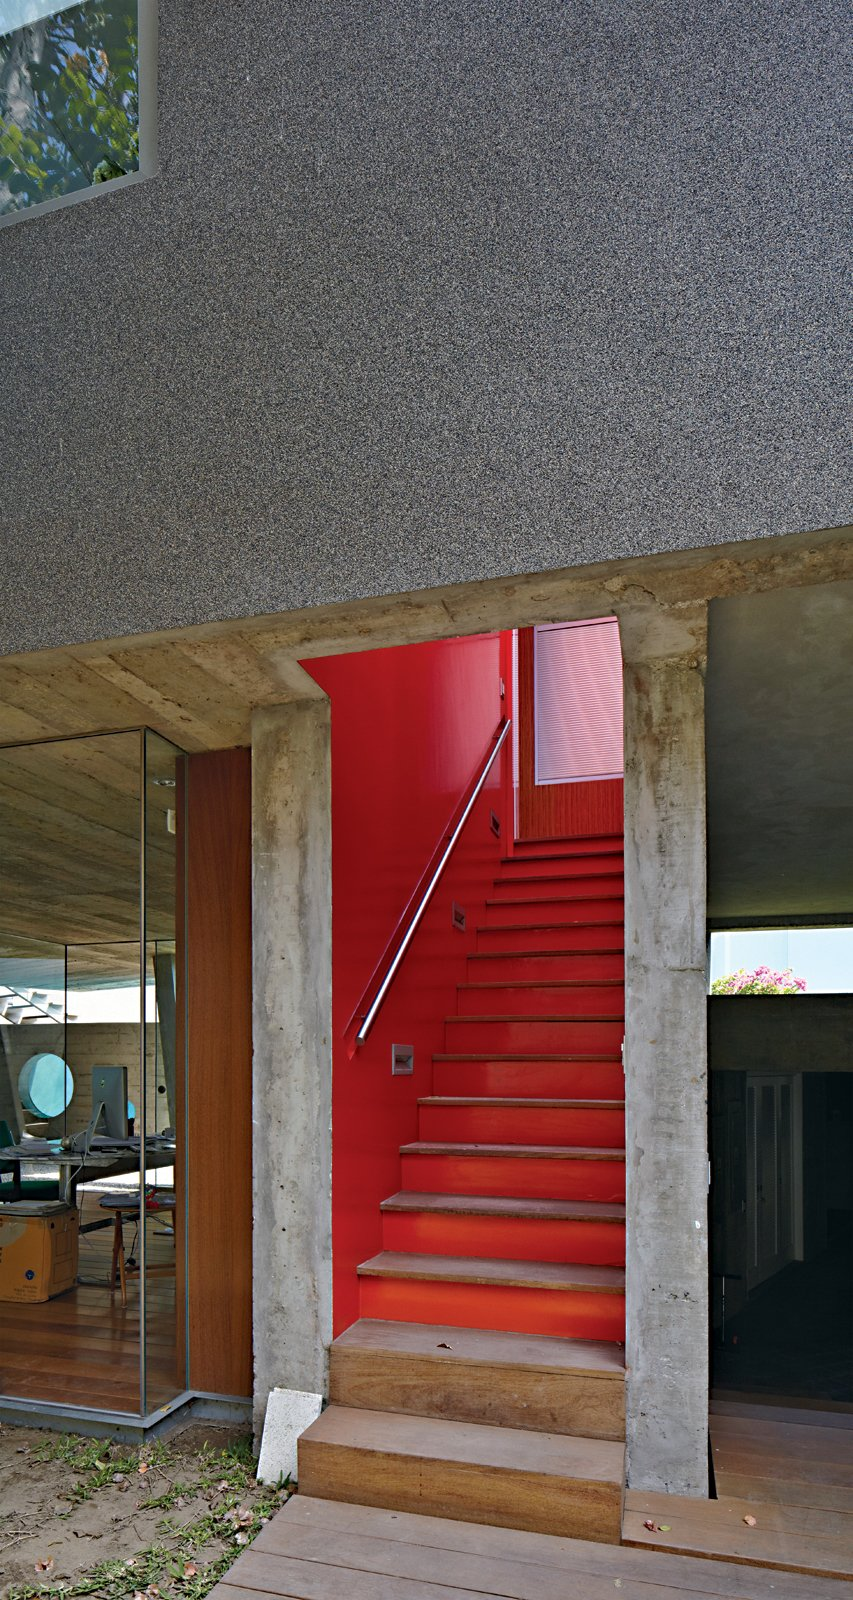 Staircase, Wood Tread, and Metal Railing Given Lima's dry climate, the architects were able to introduce clever indoor-outdoor gestures such as an open stairwell, and semicovered walkways that allow the trees to provide cover.  Photo 13 of 13 in A Modern Concrete Home in Peru